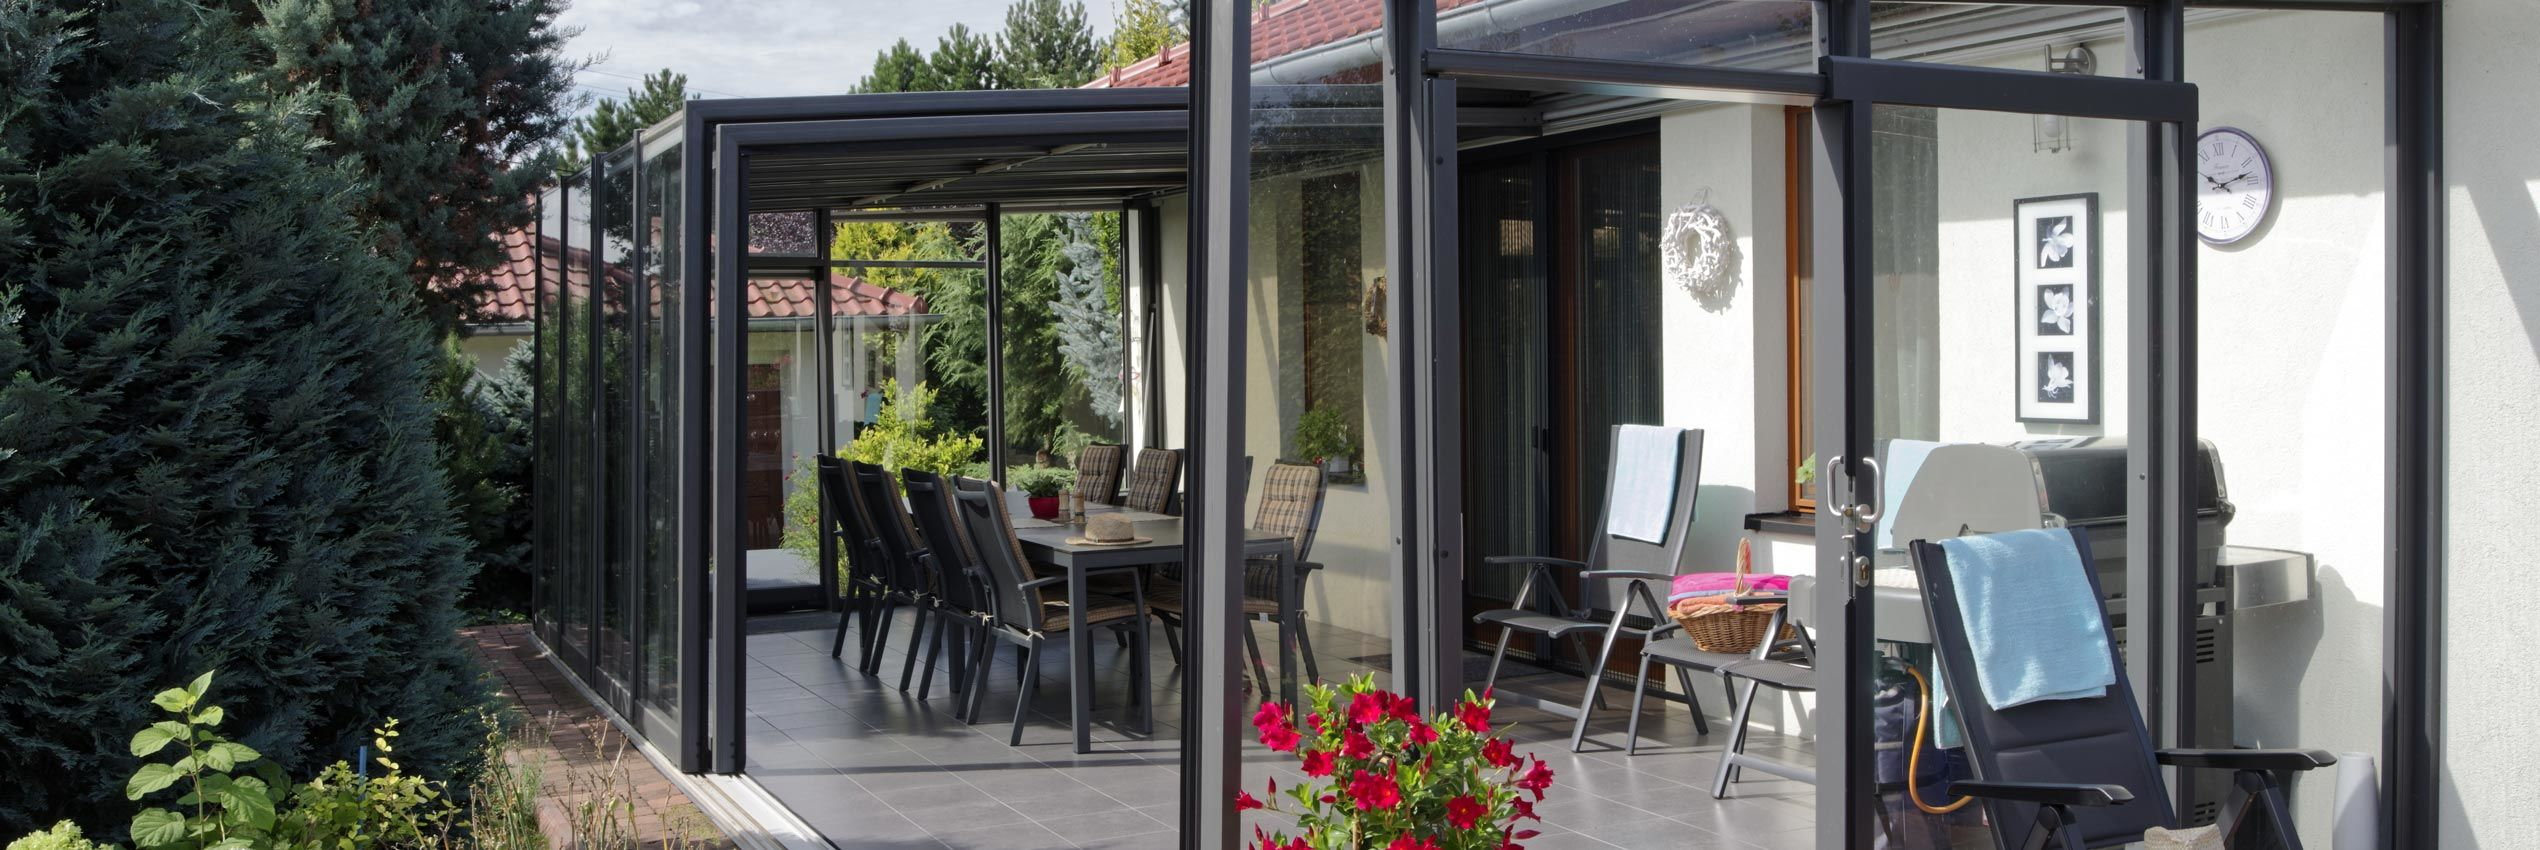 Closed retractable patio enclosure system CORSO Glass for HORECA